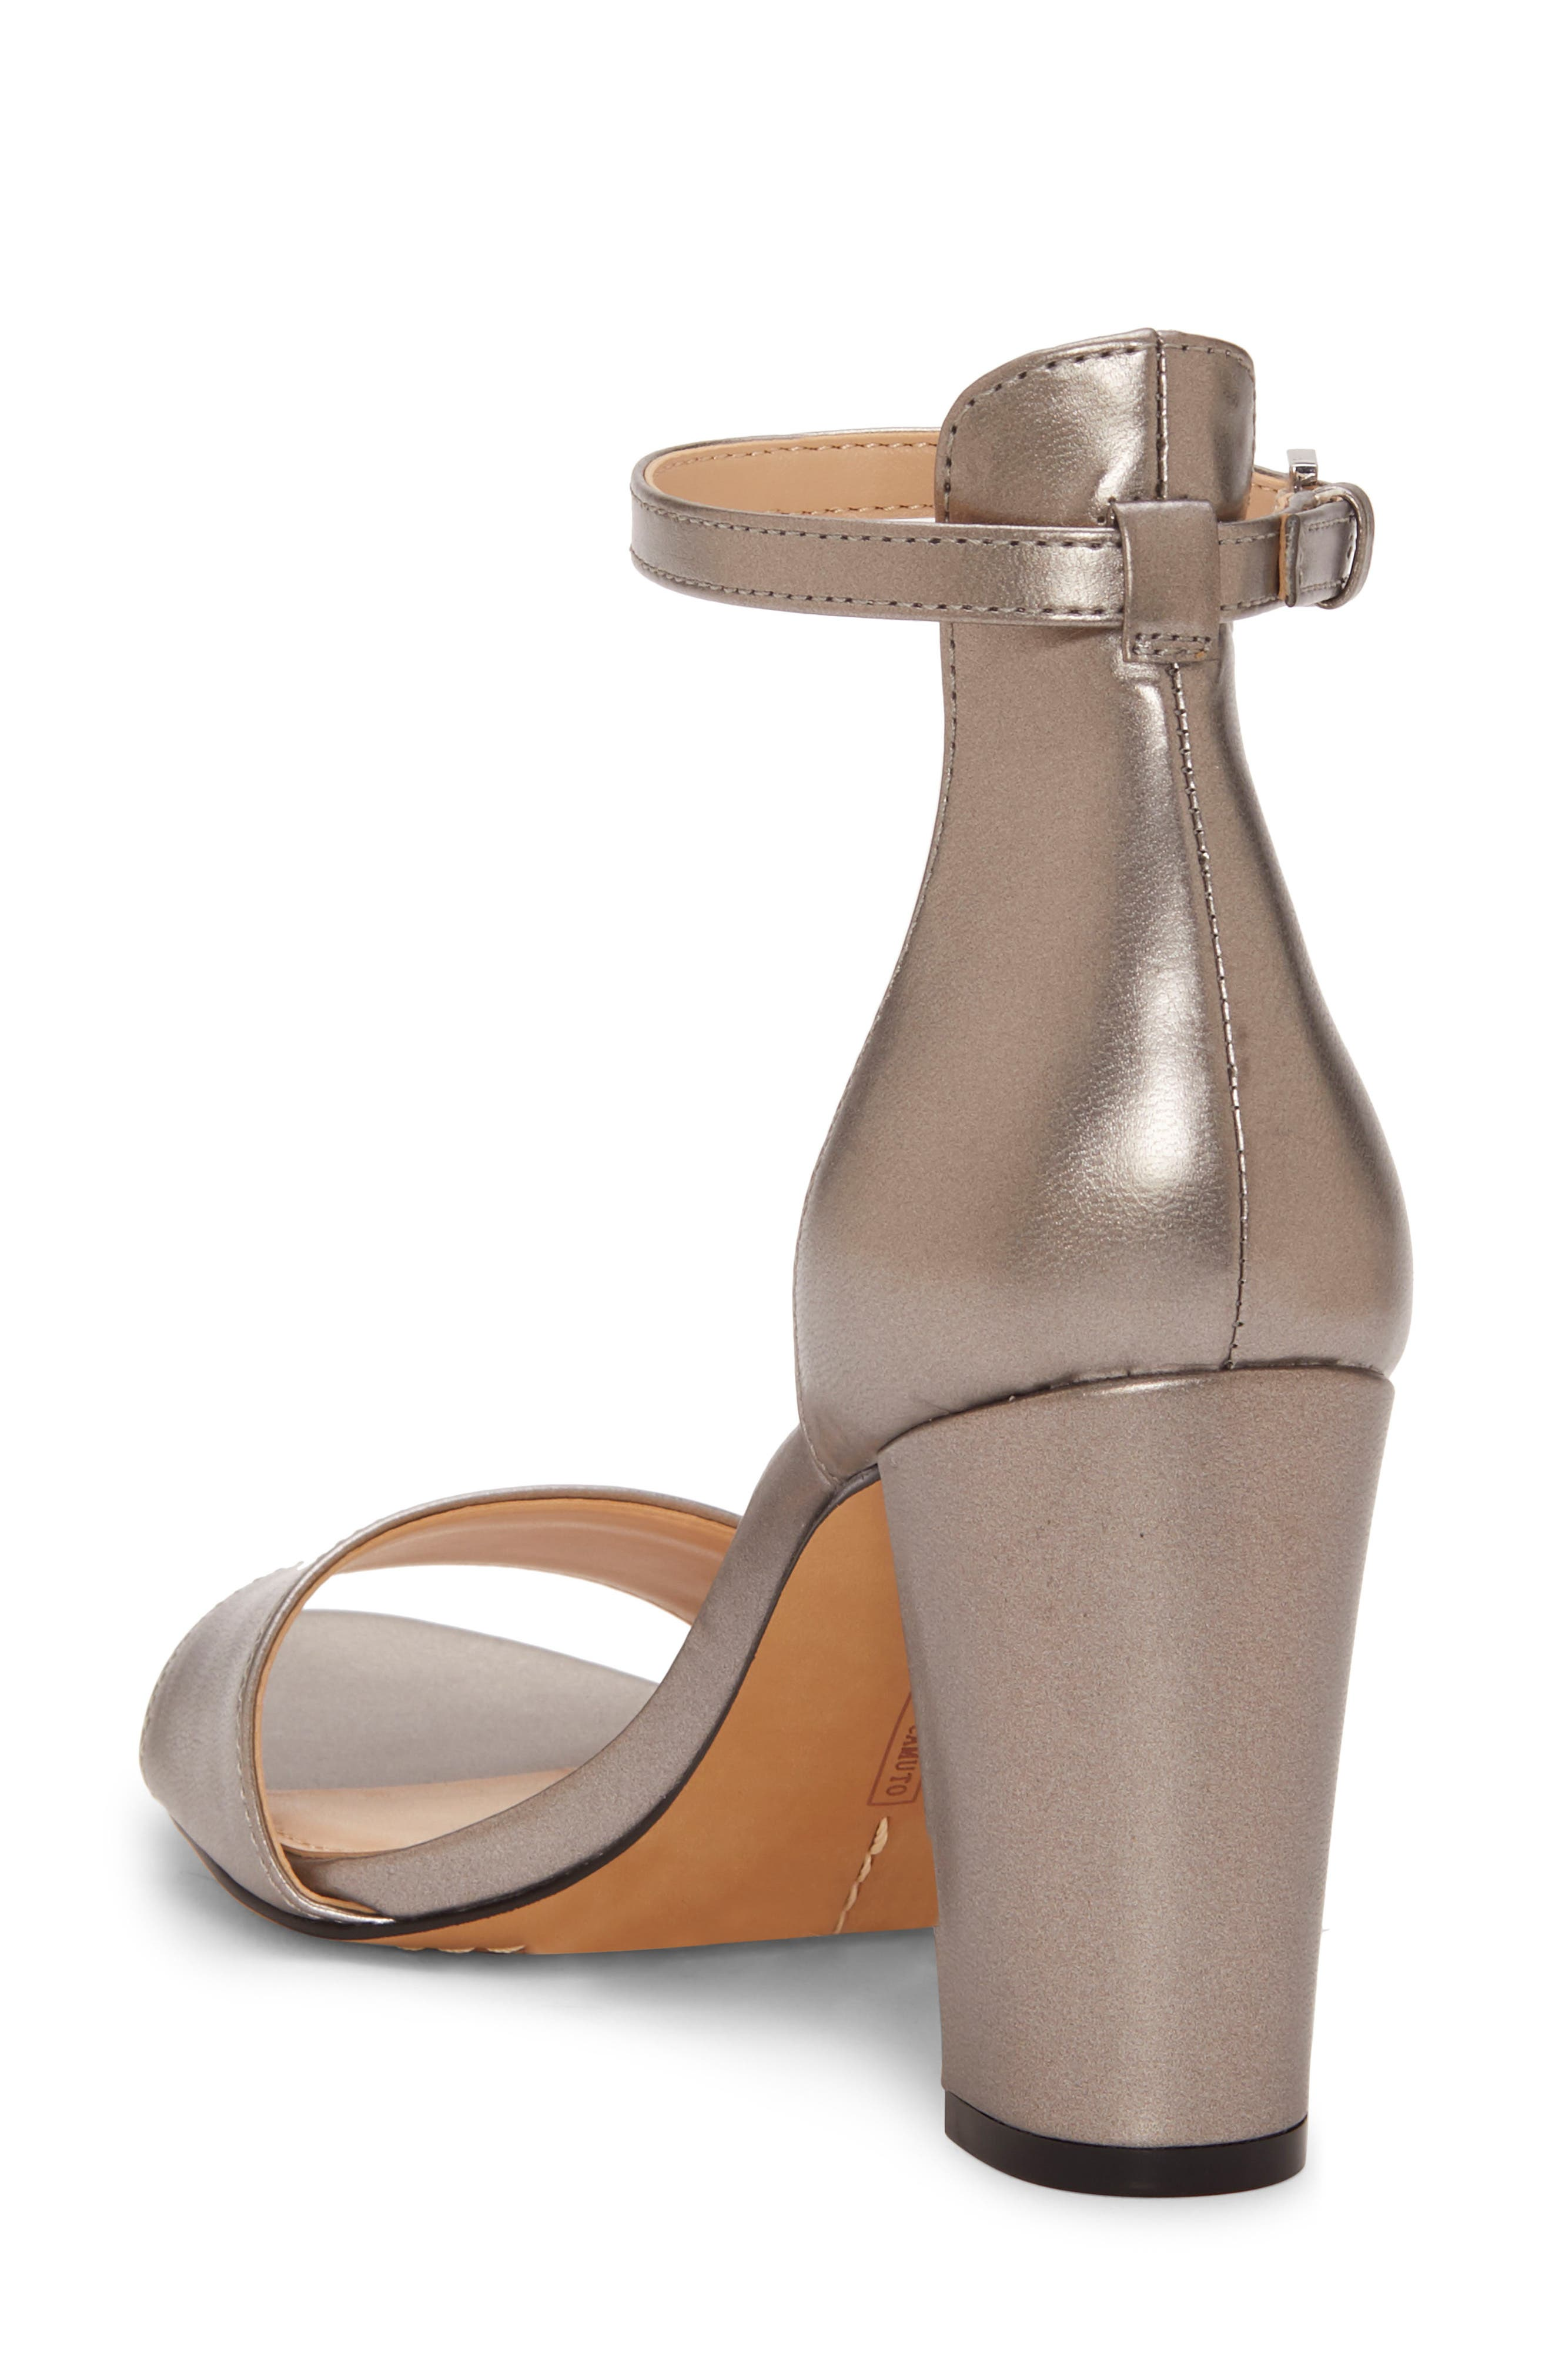 VINCE CAMUTO,                             Corlina Ankle Strap Sandal,                             Alternate thumbnail 2, color,                             METAL GREY